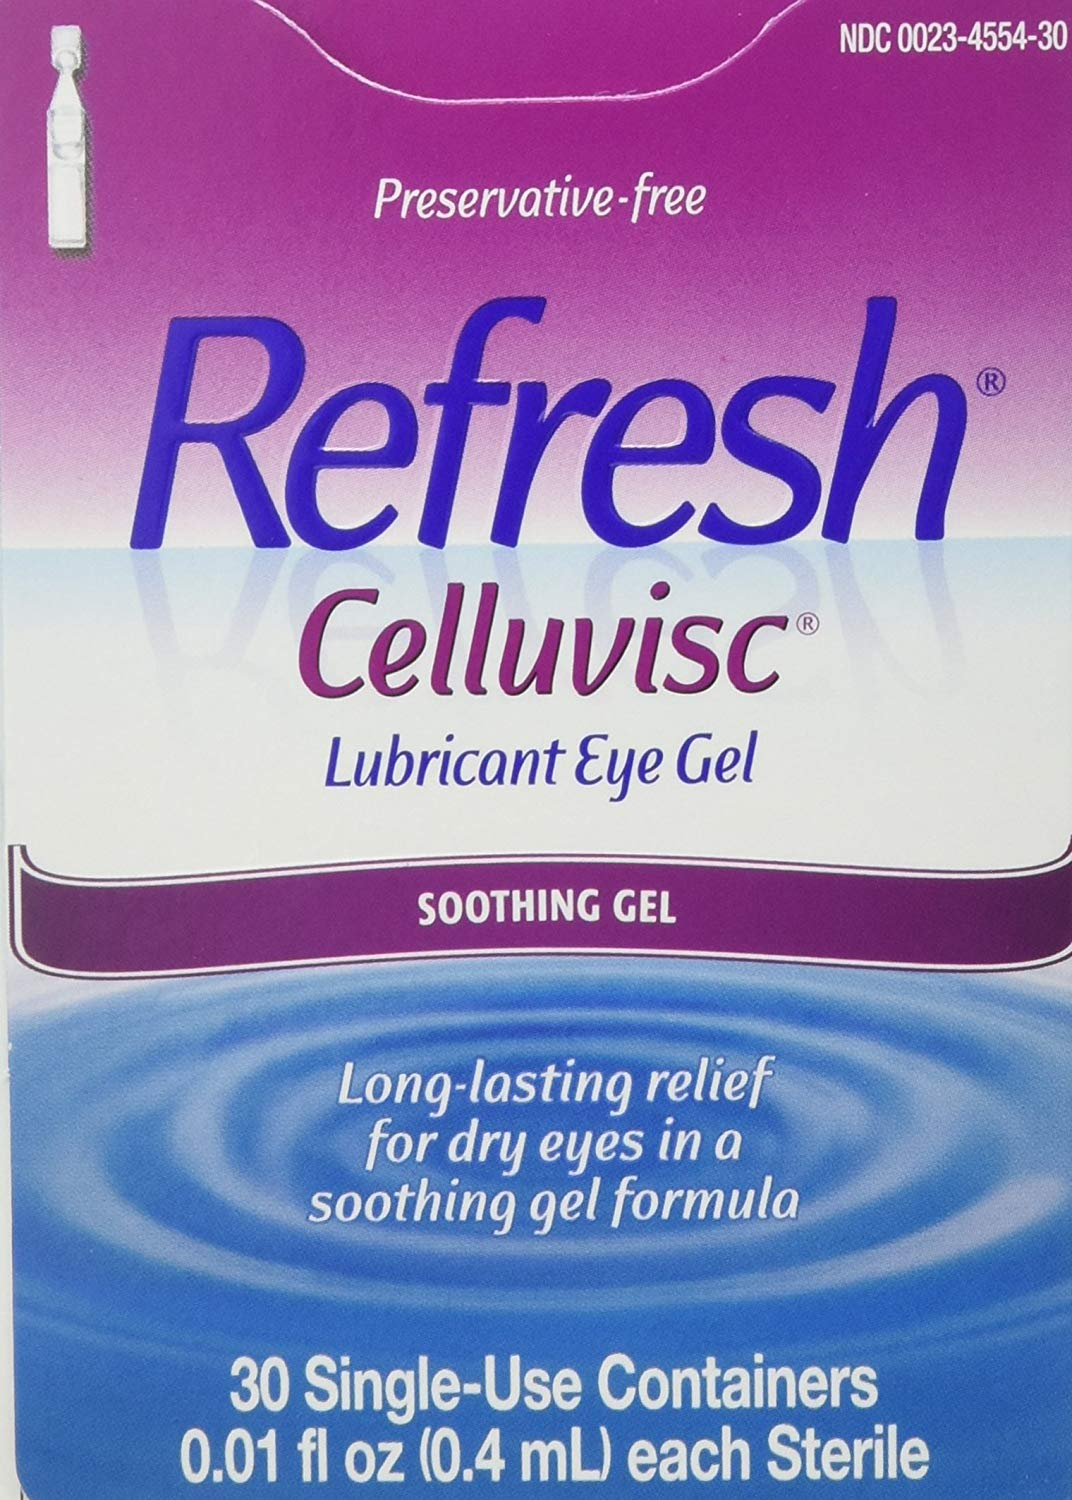 CELLUVISC Lubricant Eye Gel Single-Use Containers 30 ea ...